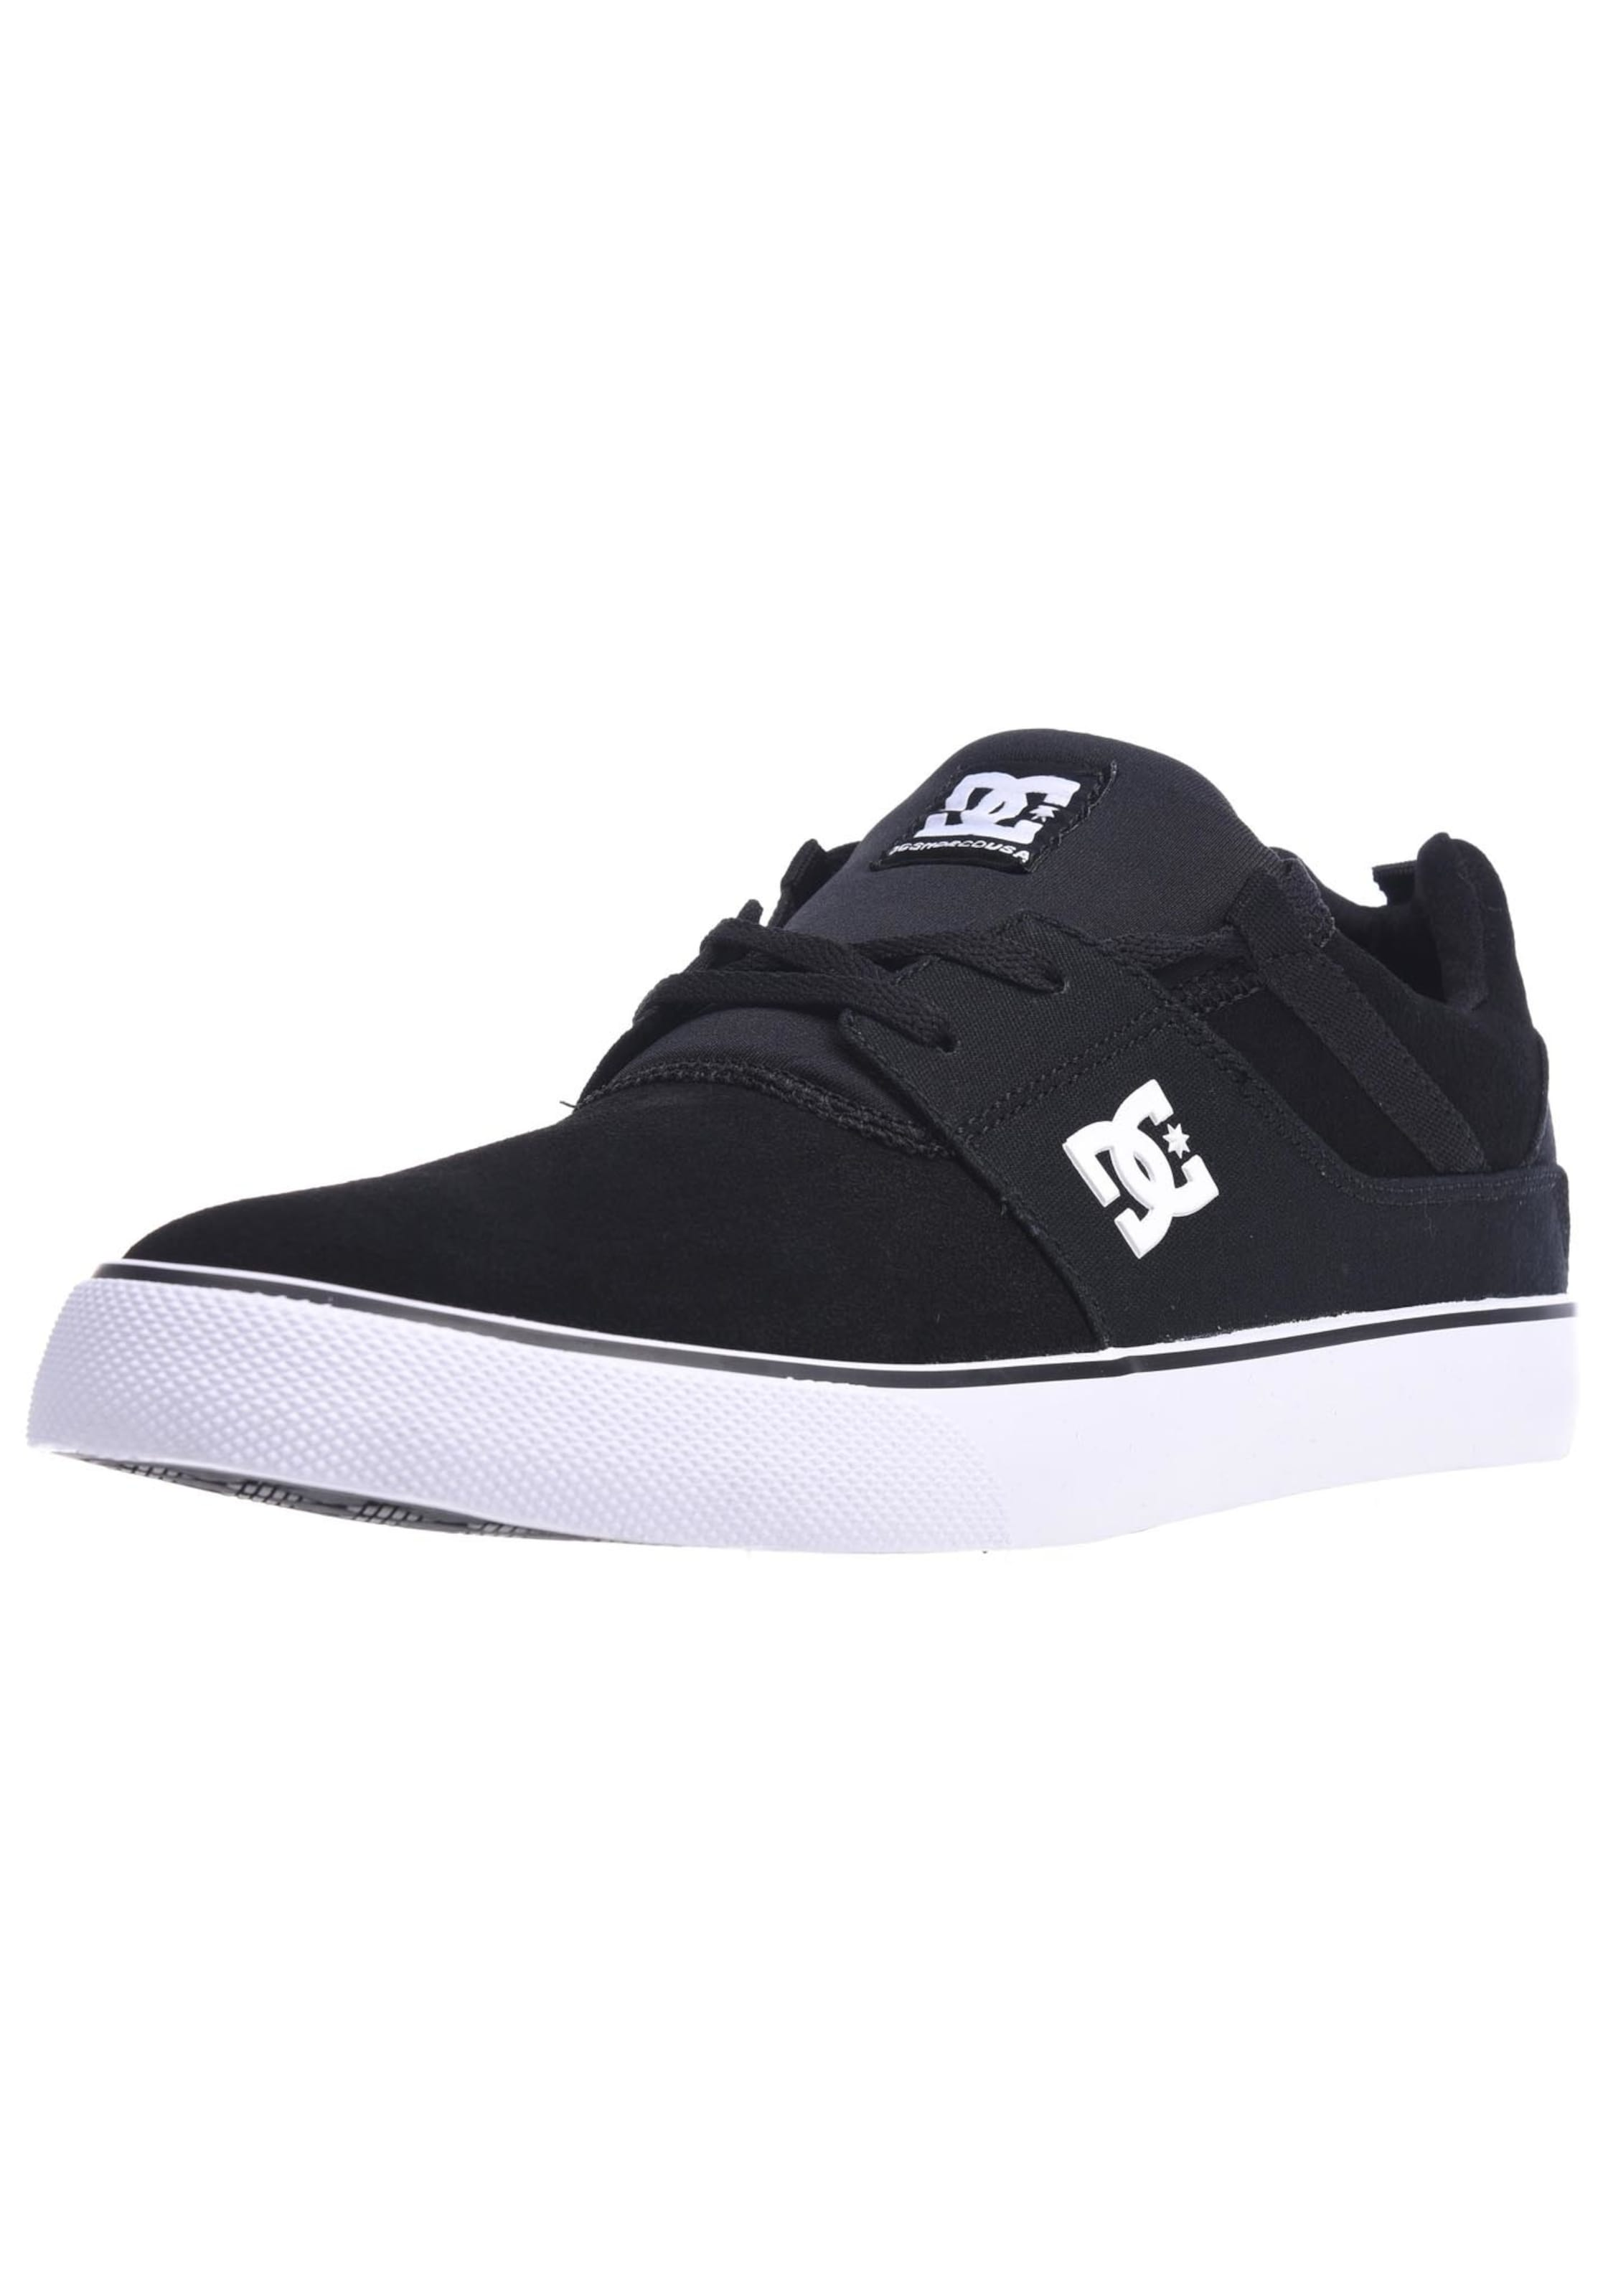 Schwarz Dc Shoes 'heathrow Vulc' In Sneaker 7gbfyvY6